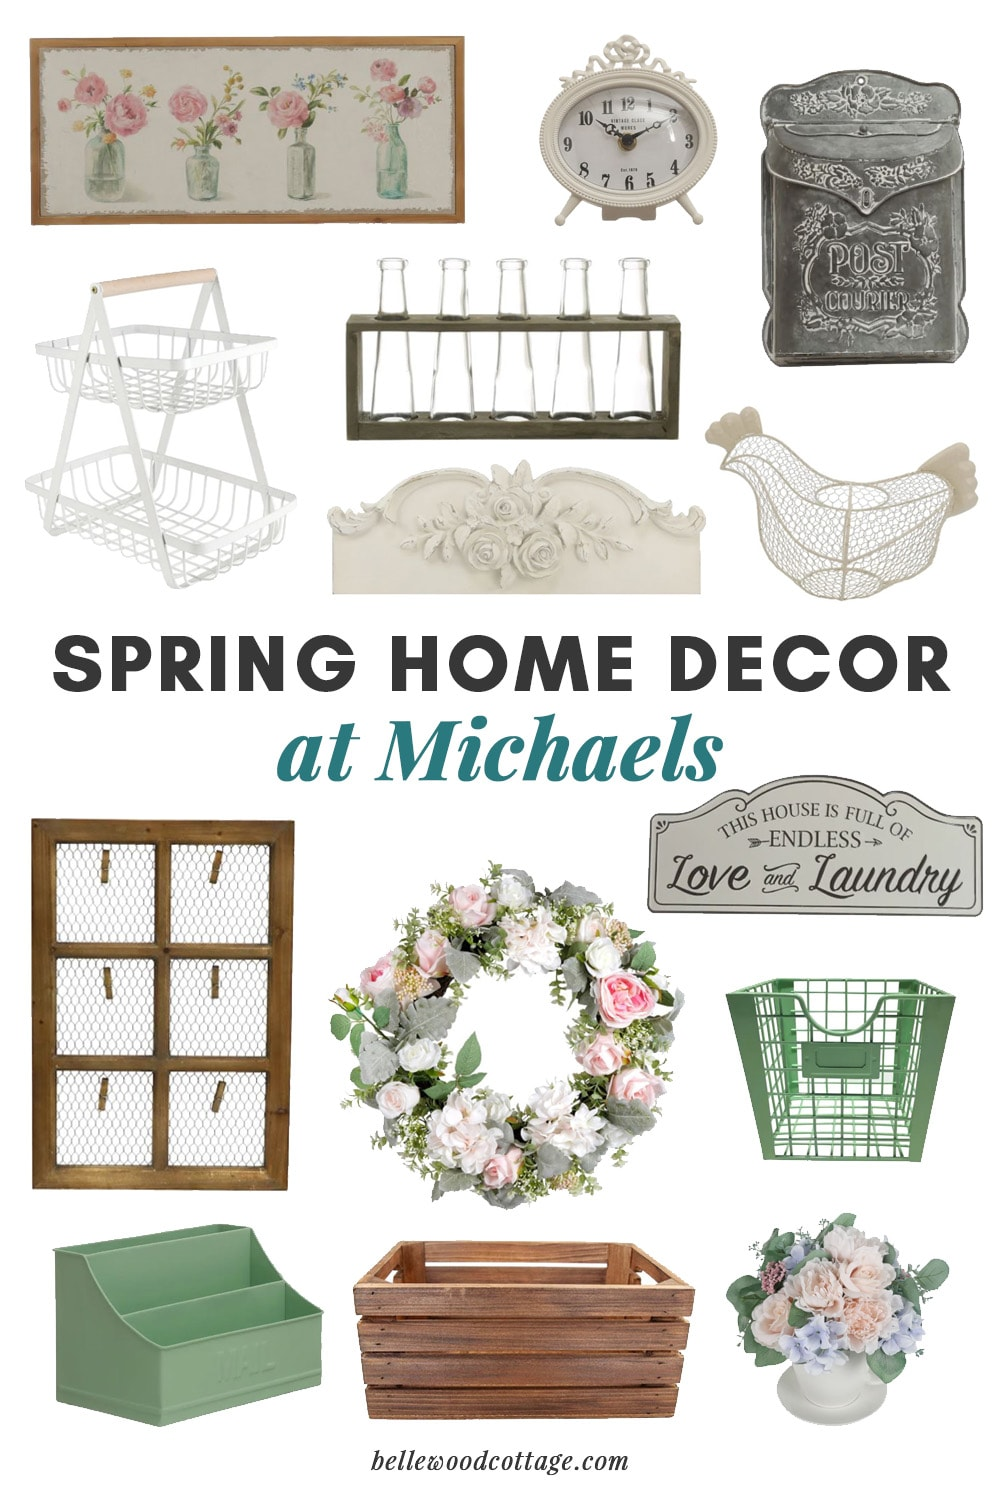 A collage of spring decor from Michaels.